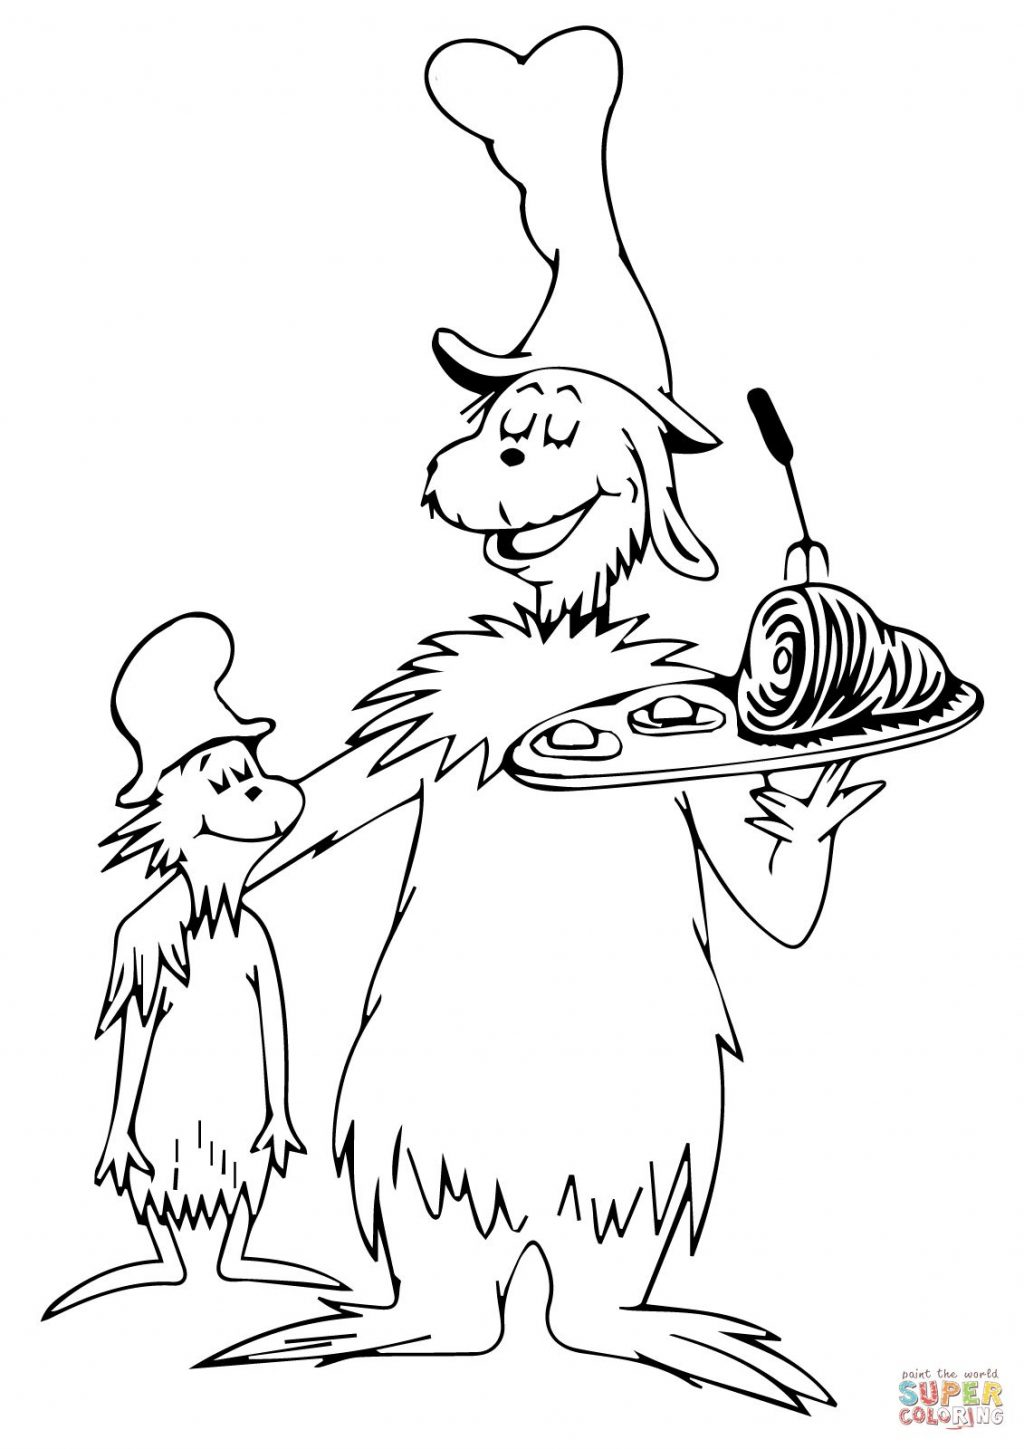 Go Dog Go Coloring Pages At Getcolorings